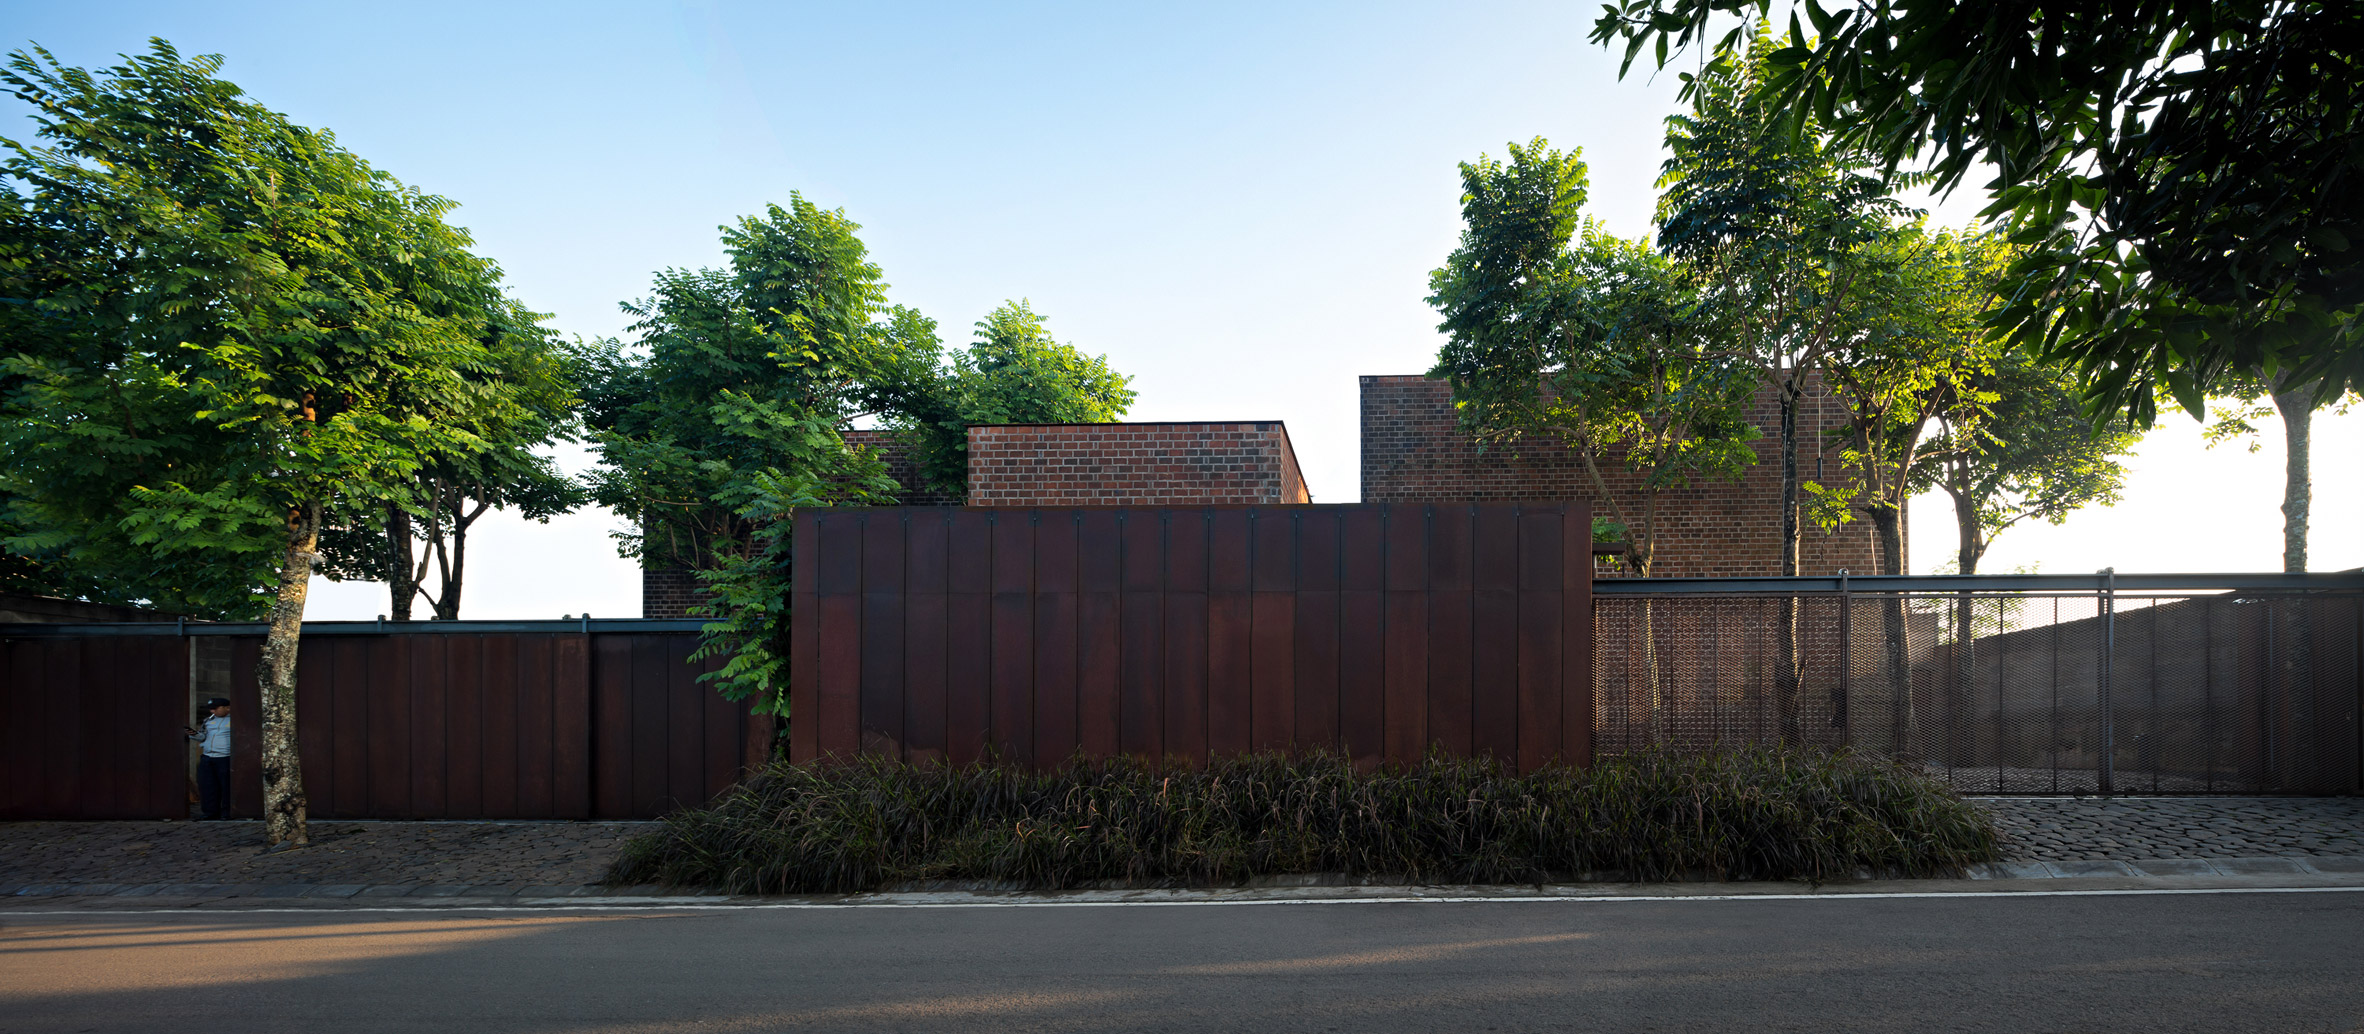 Studio Air Putih combines brick with rusted steel and concrete at Jakarta offices